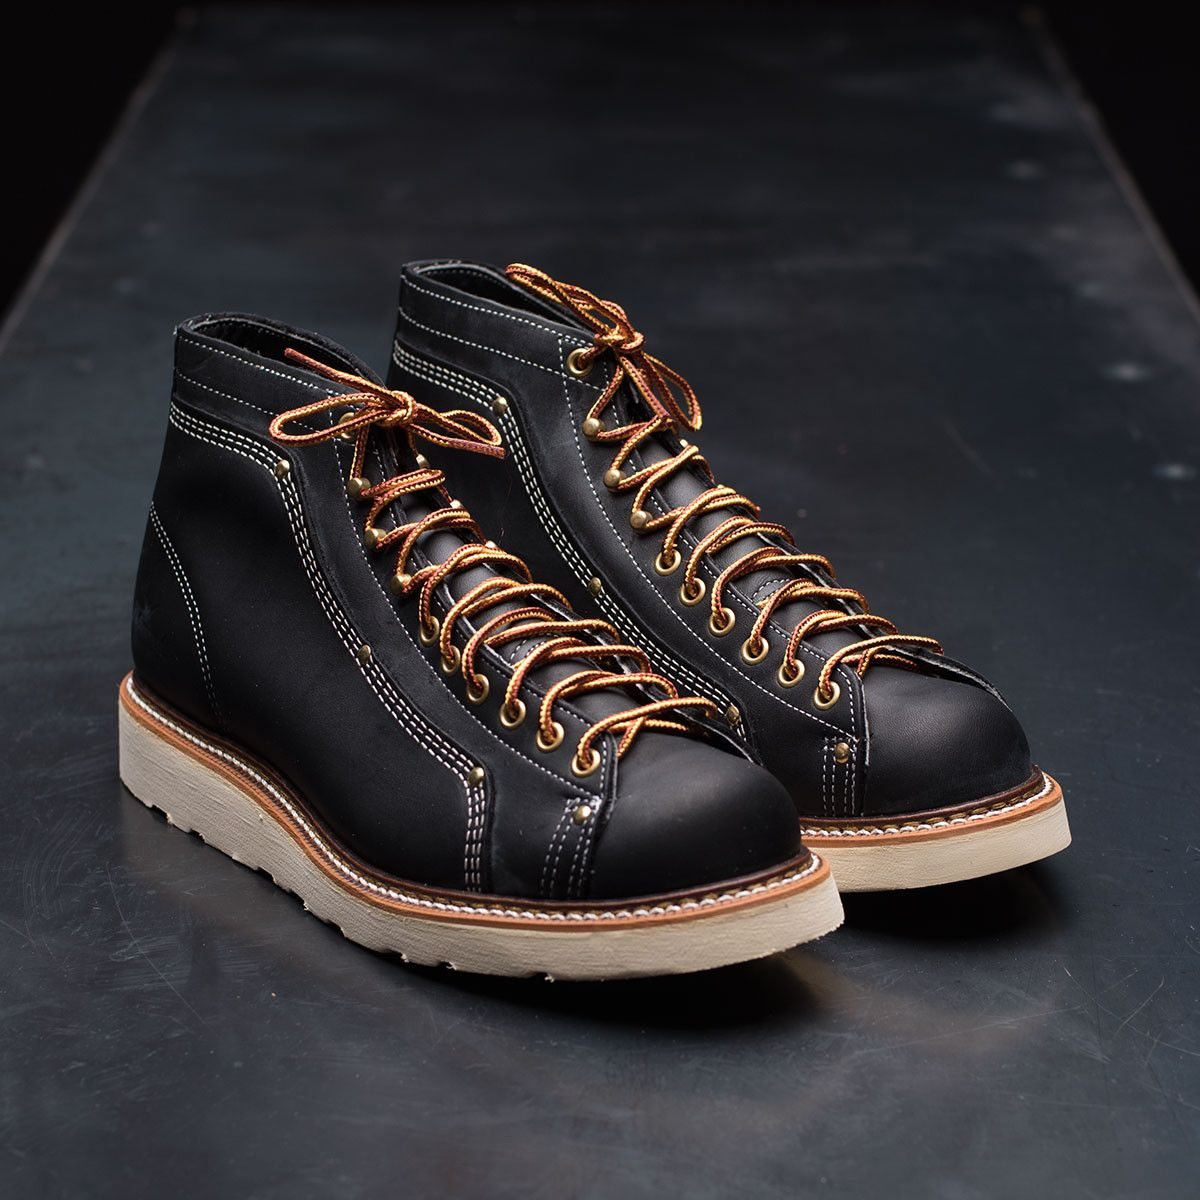 Thorogood American Heritage Lace-To-Toe Roofer Boots - Black